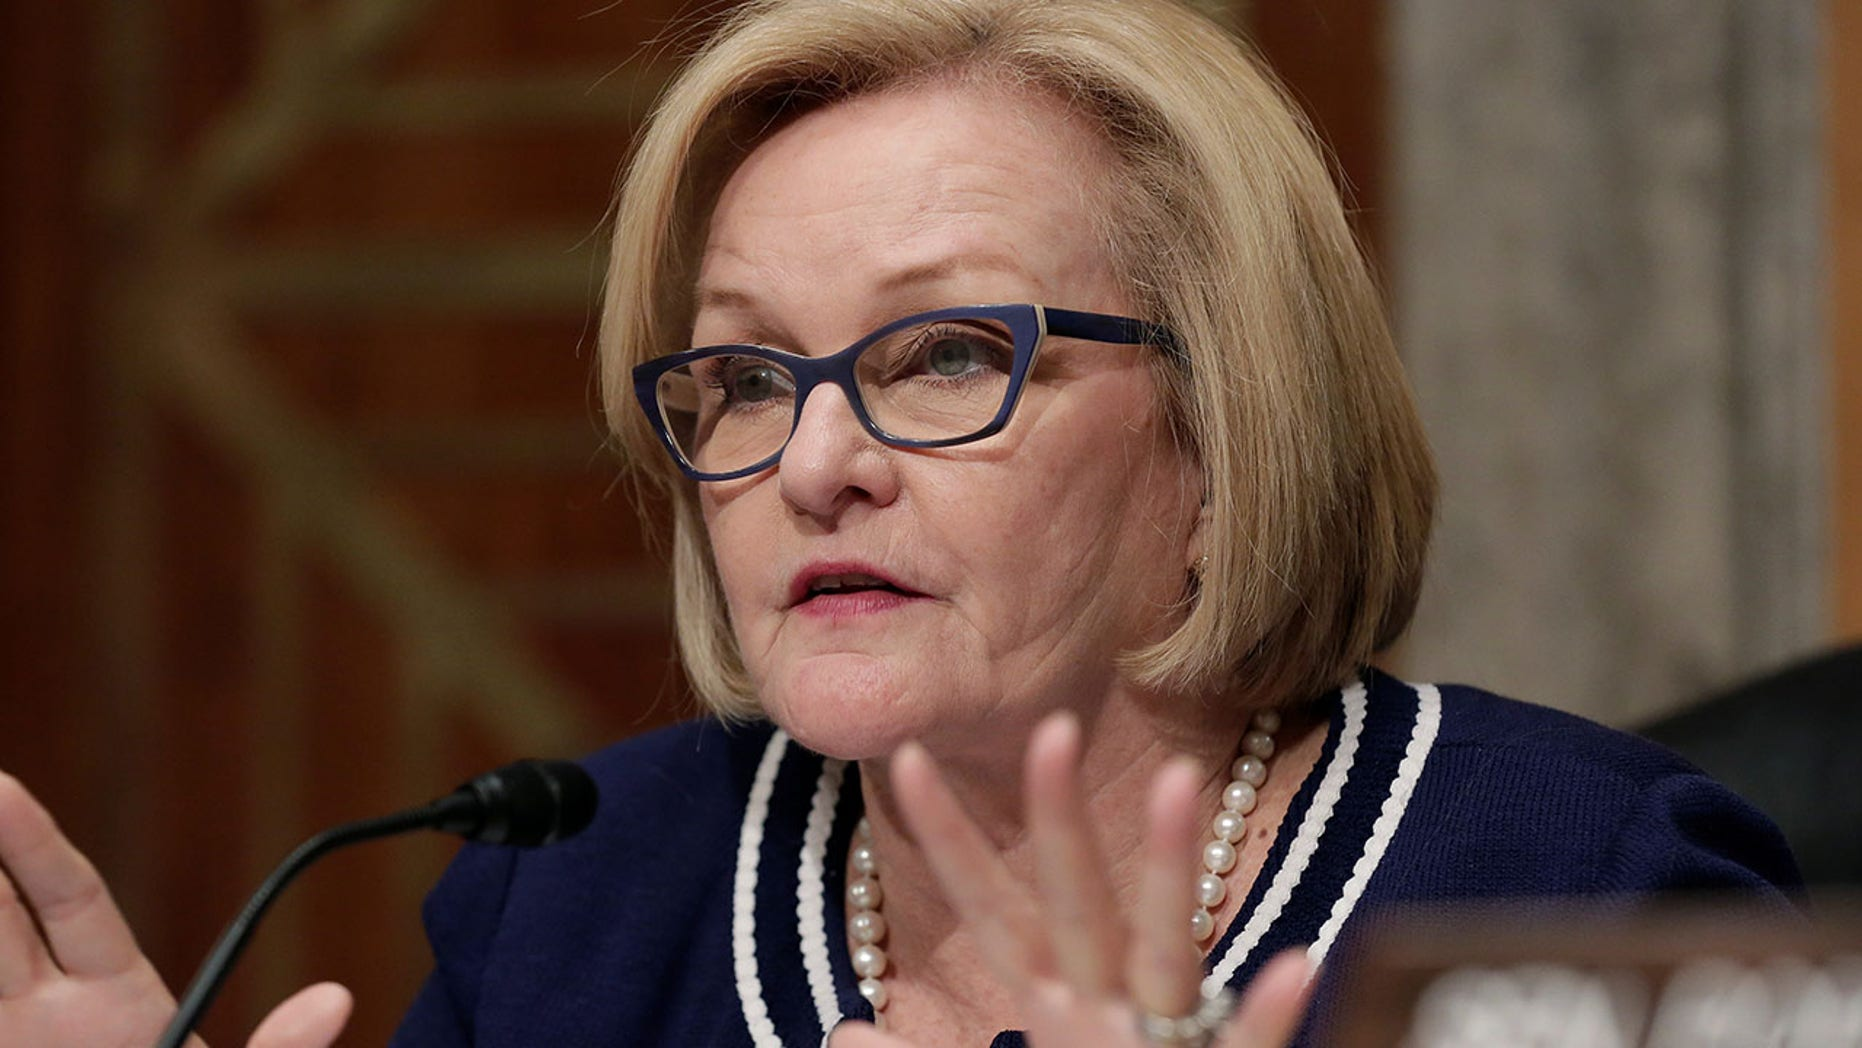 Sen. Claire McCaskill is touting an order criticizing her Republican opponent, but the order is written by a judge she recommended.